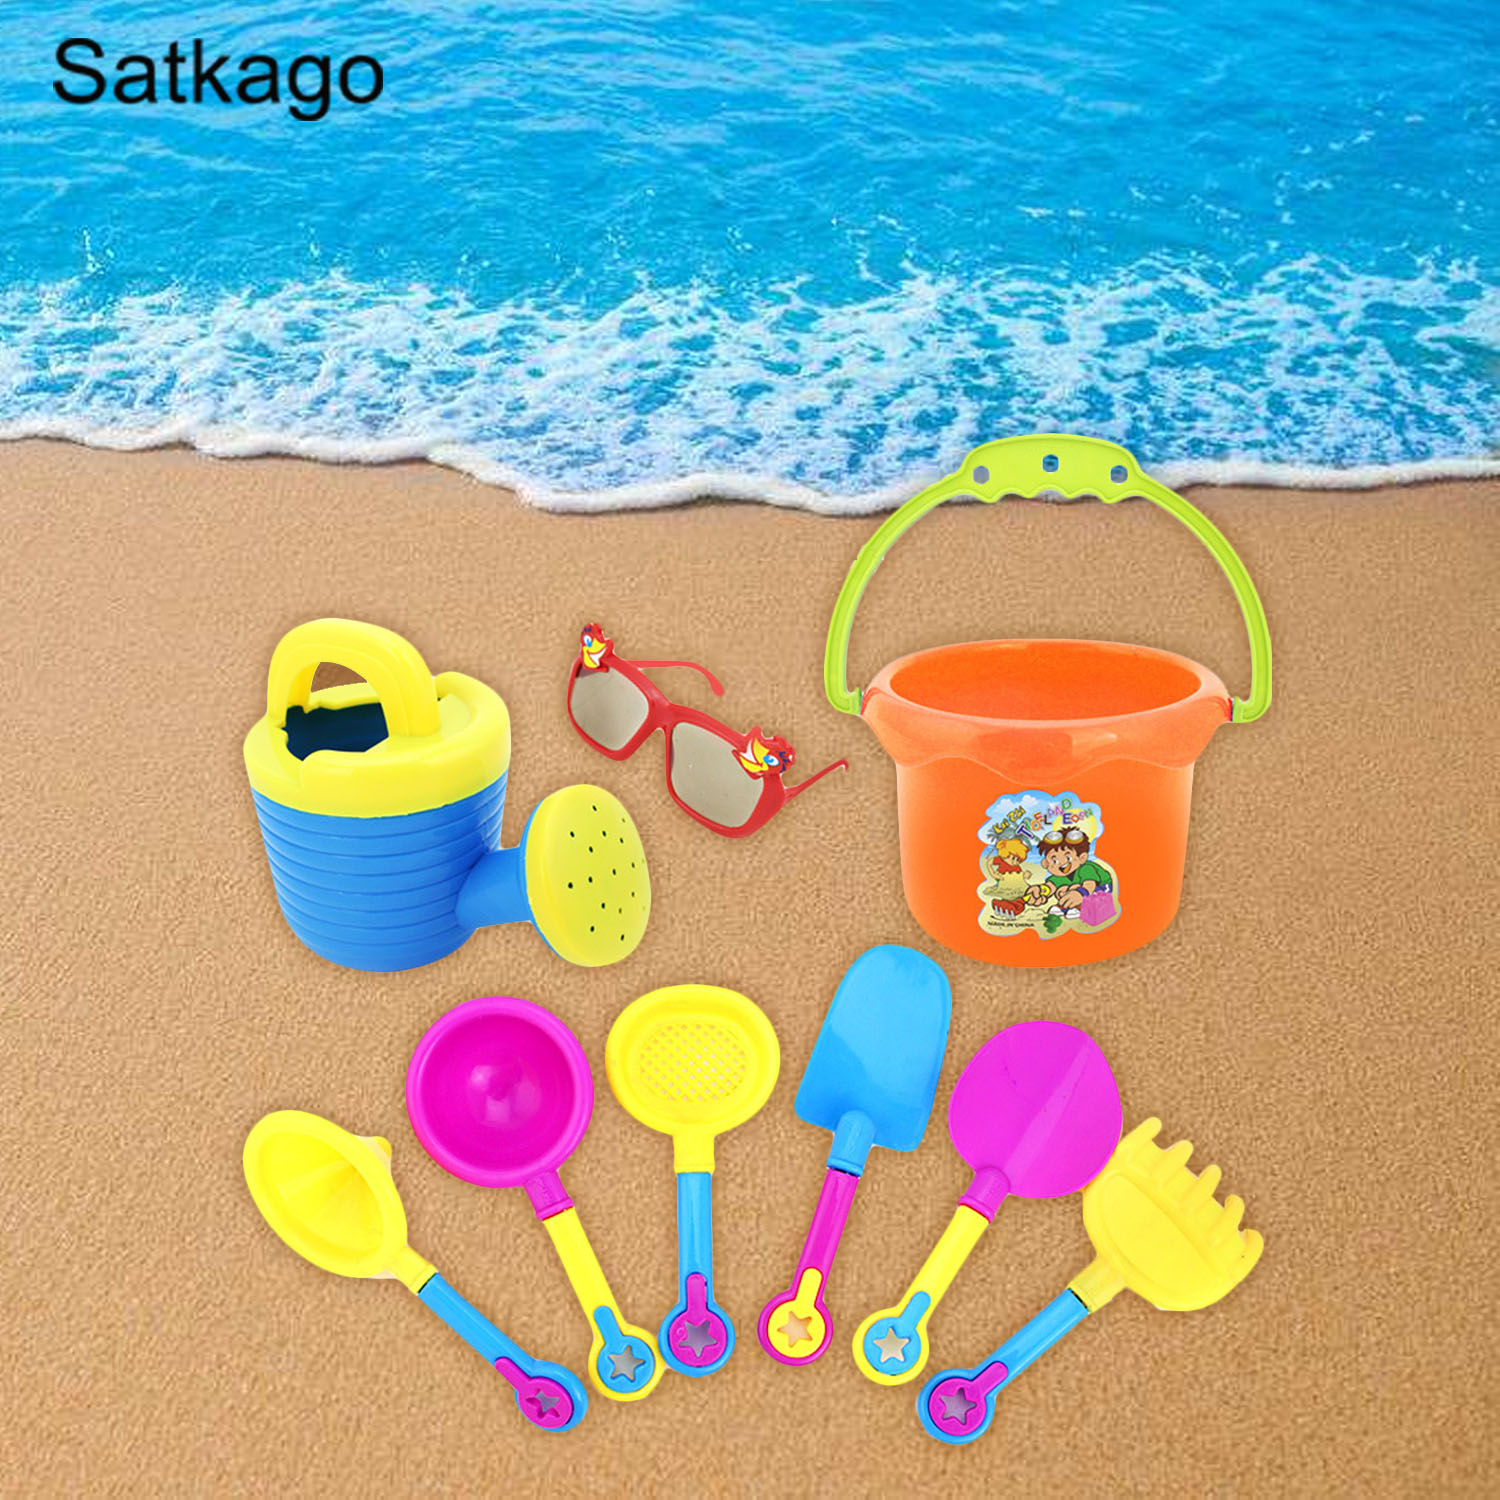 Satkago 9pcs Funny Kid Beach Sand Game Toys Set Shovel Hourglass Bucket Kids Beach Playset Role Play Toy Kit Random Style